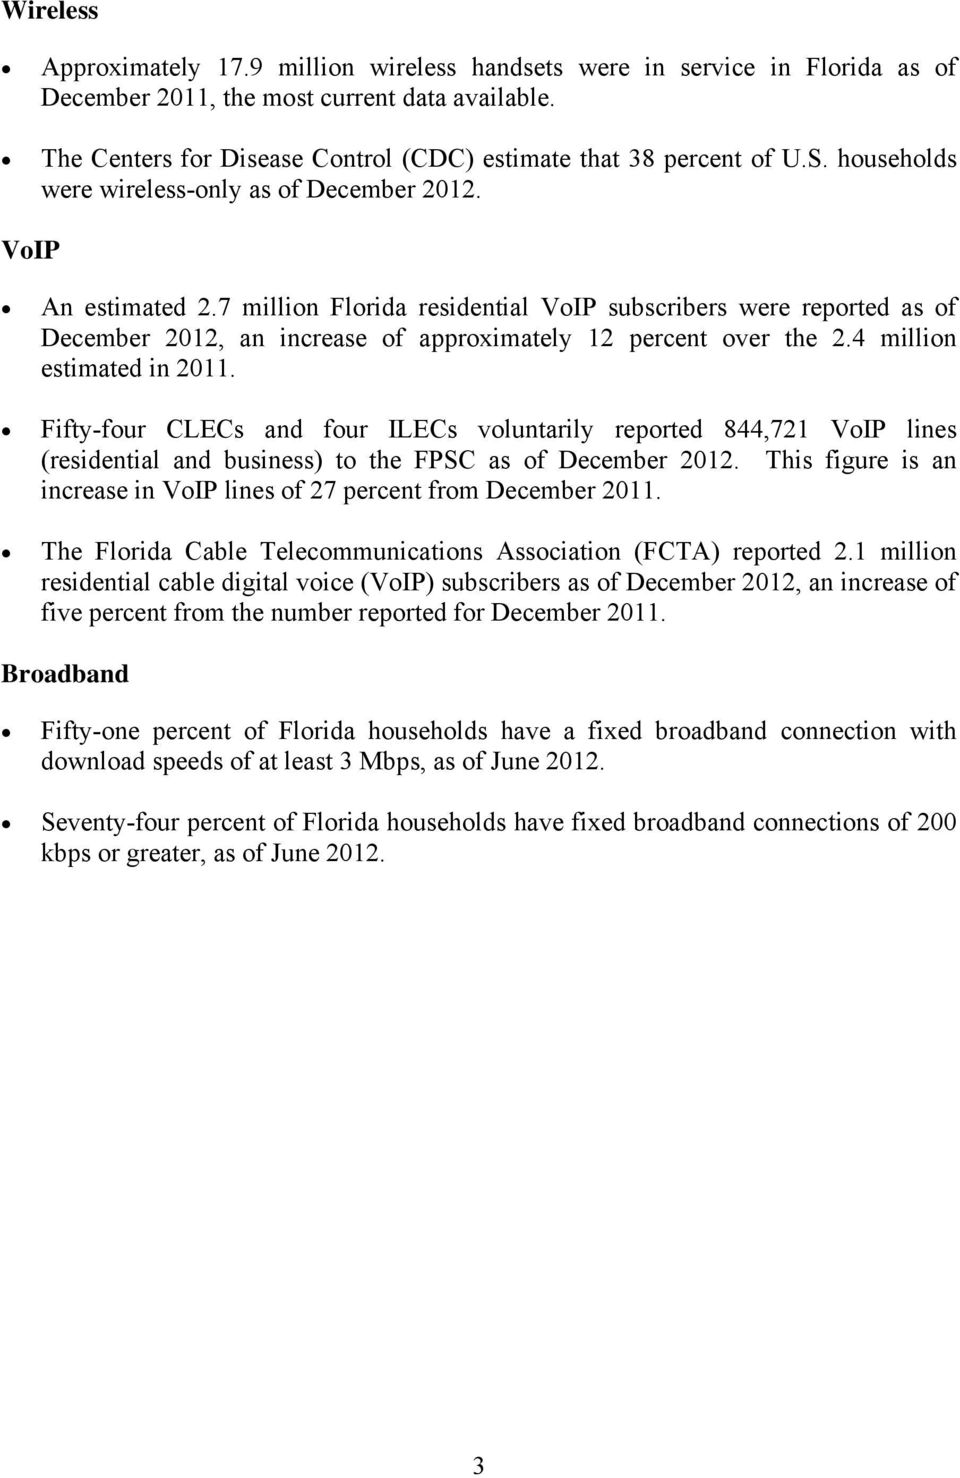 7 million Florida residential VoIP subscribers were reported as of December 2012, an increase of approximately 12 percent over the 2.4 million estimated in 2011.